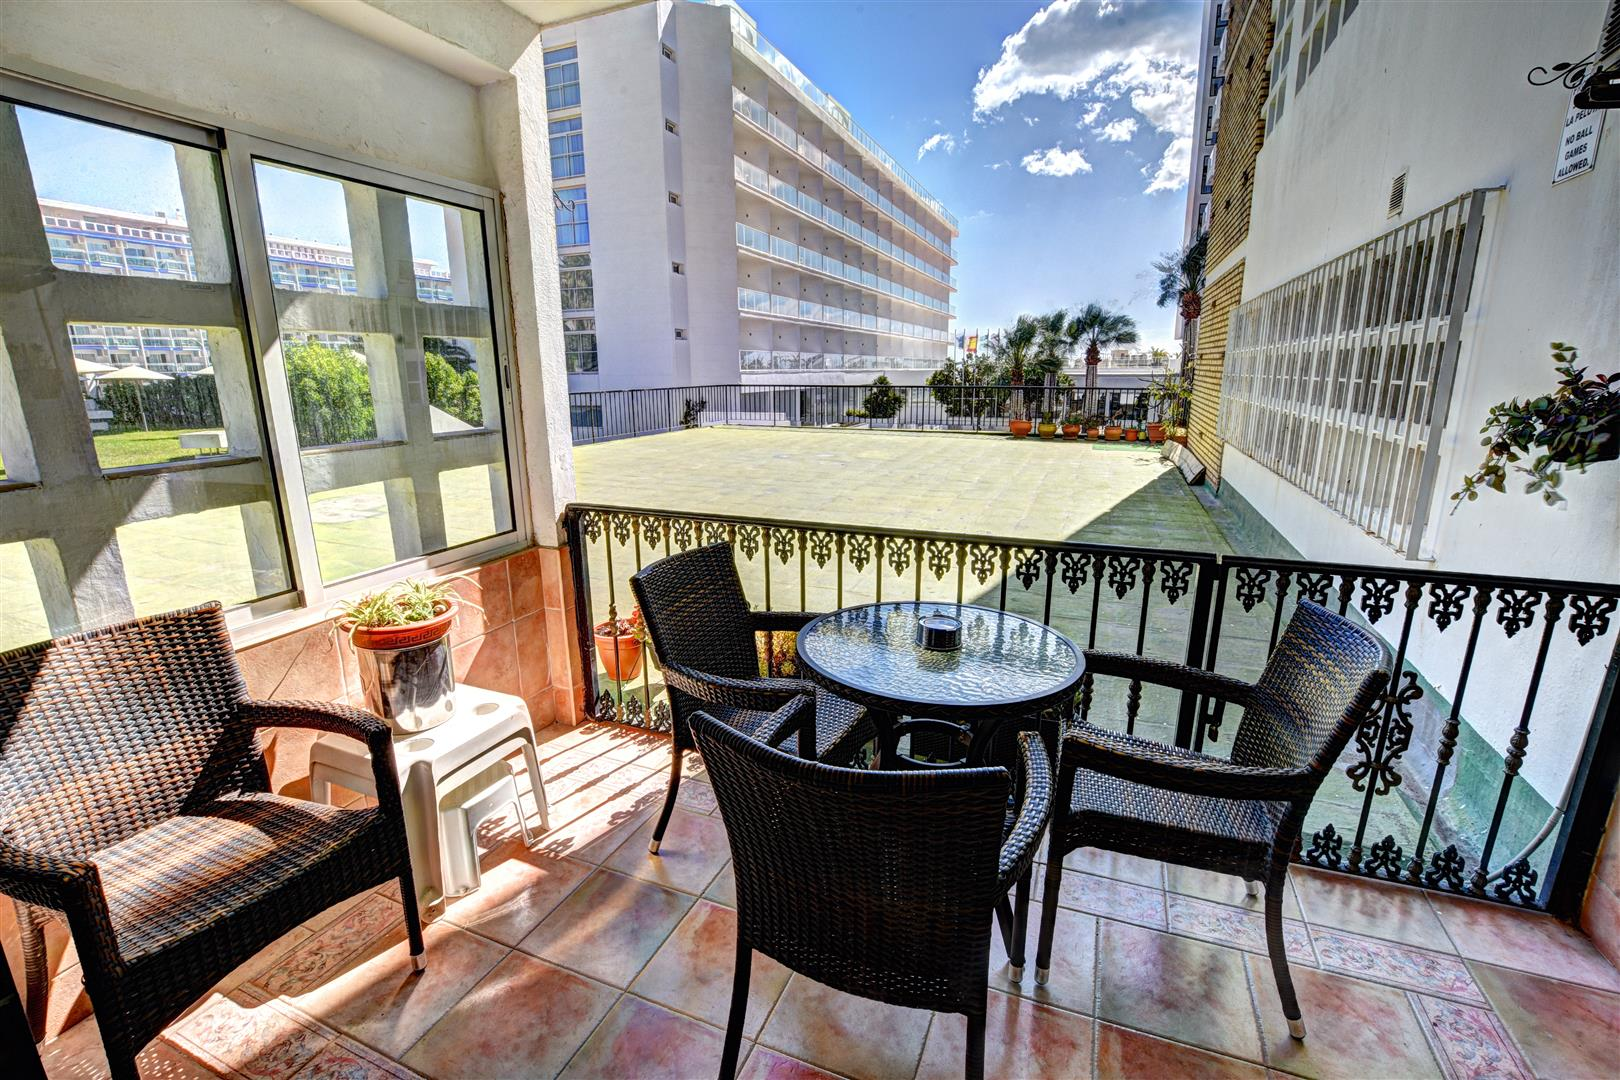 Apartment for Sale in Benalmadena Costa Puertomarina